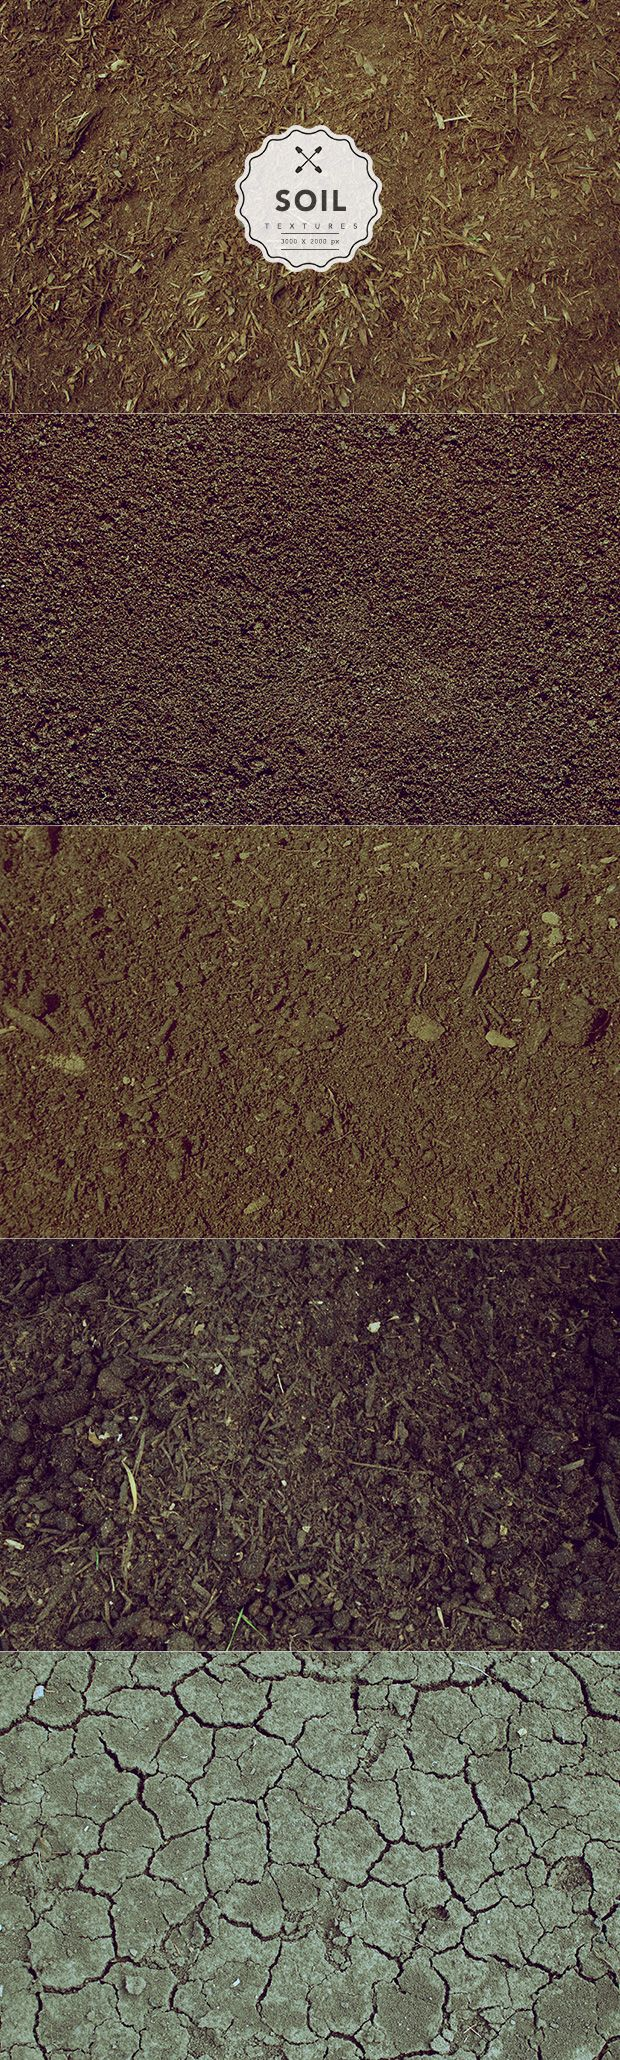 Soil textures are not so popular among graphic designers, so today's freebie is a small set of 5 highly detailed and high resolution soil textures for use within your next project.